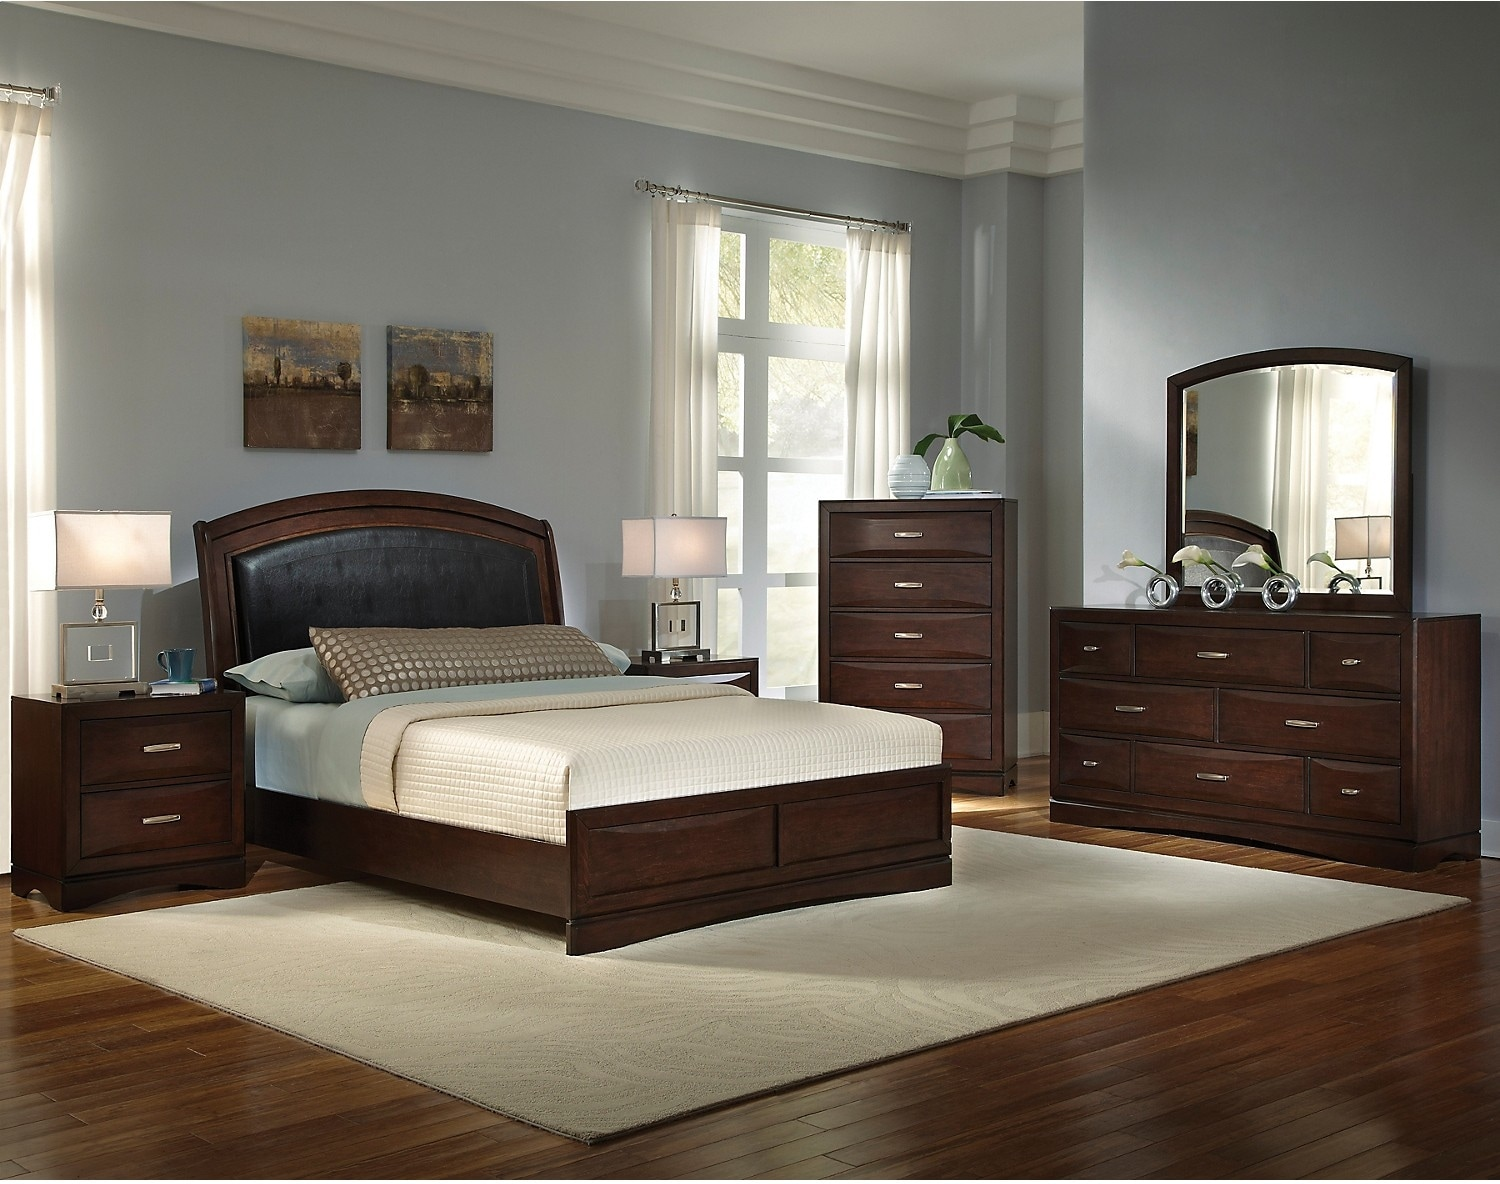 Beverly 8 piece queen bedroom set the brick for Bedroom ideas with furniture